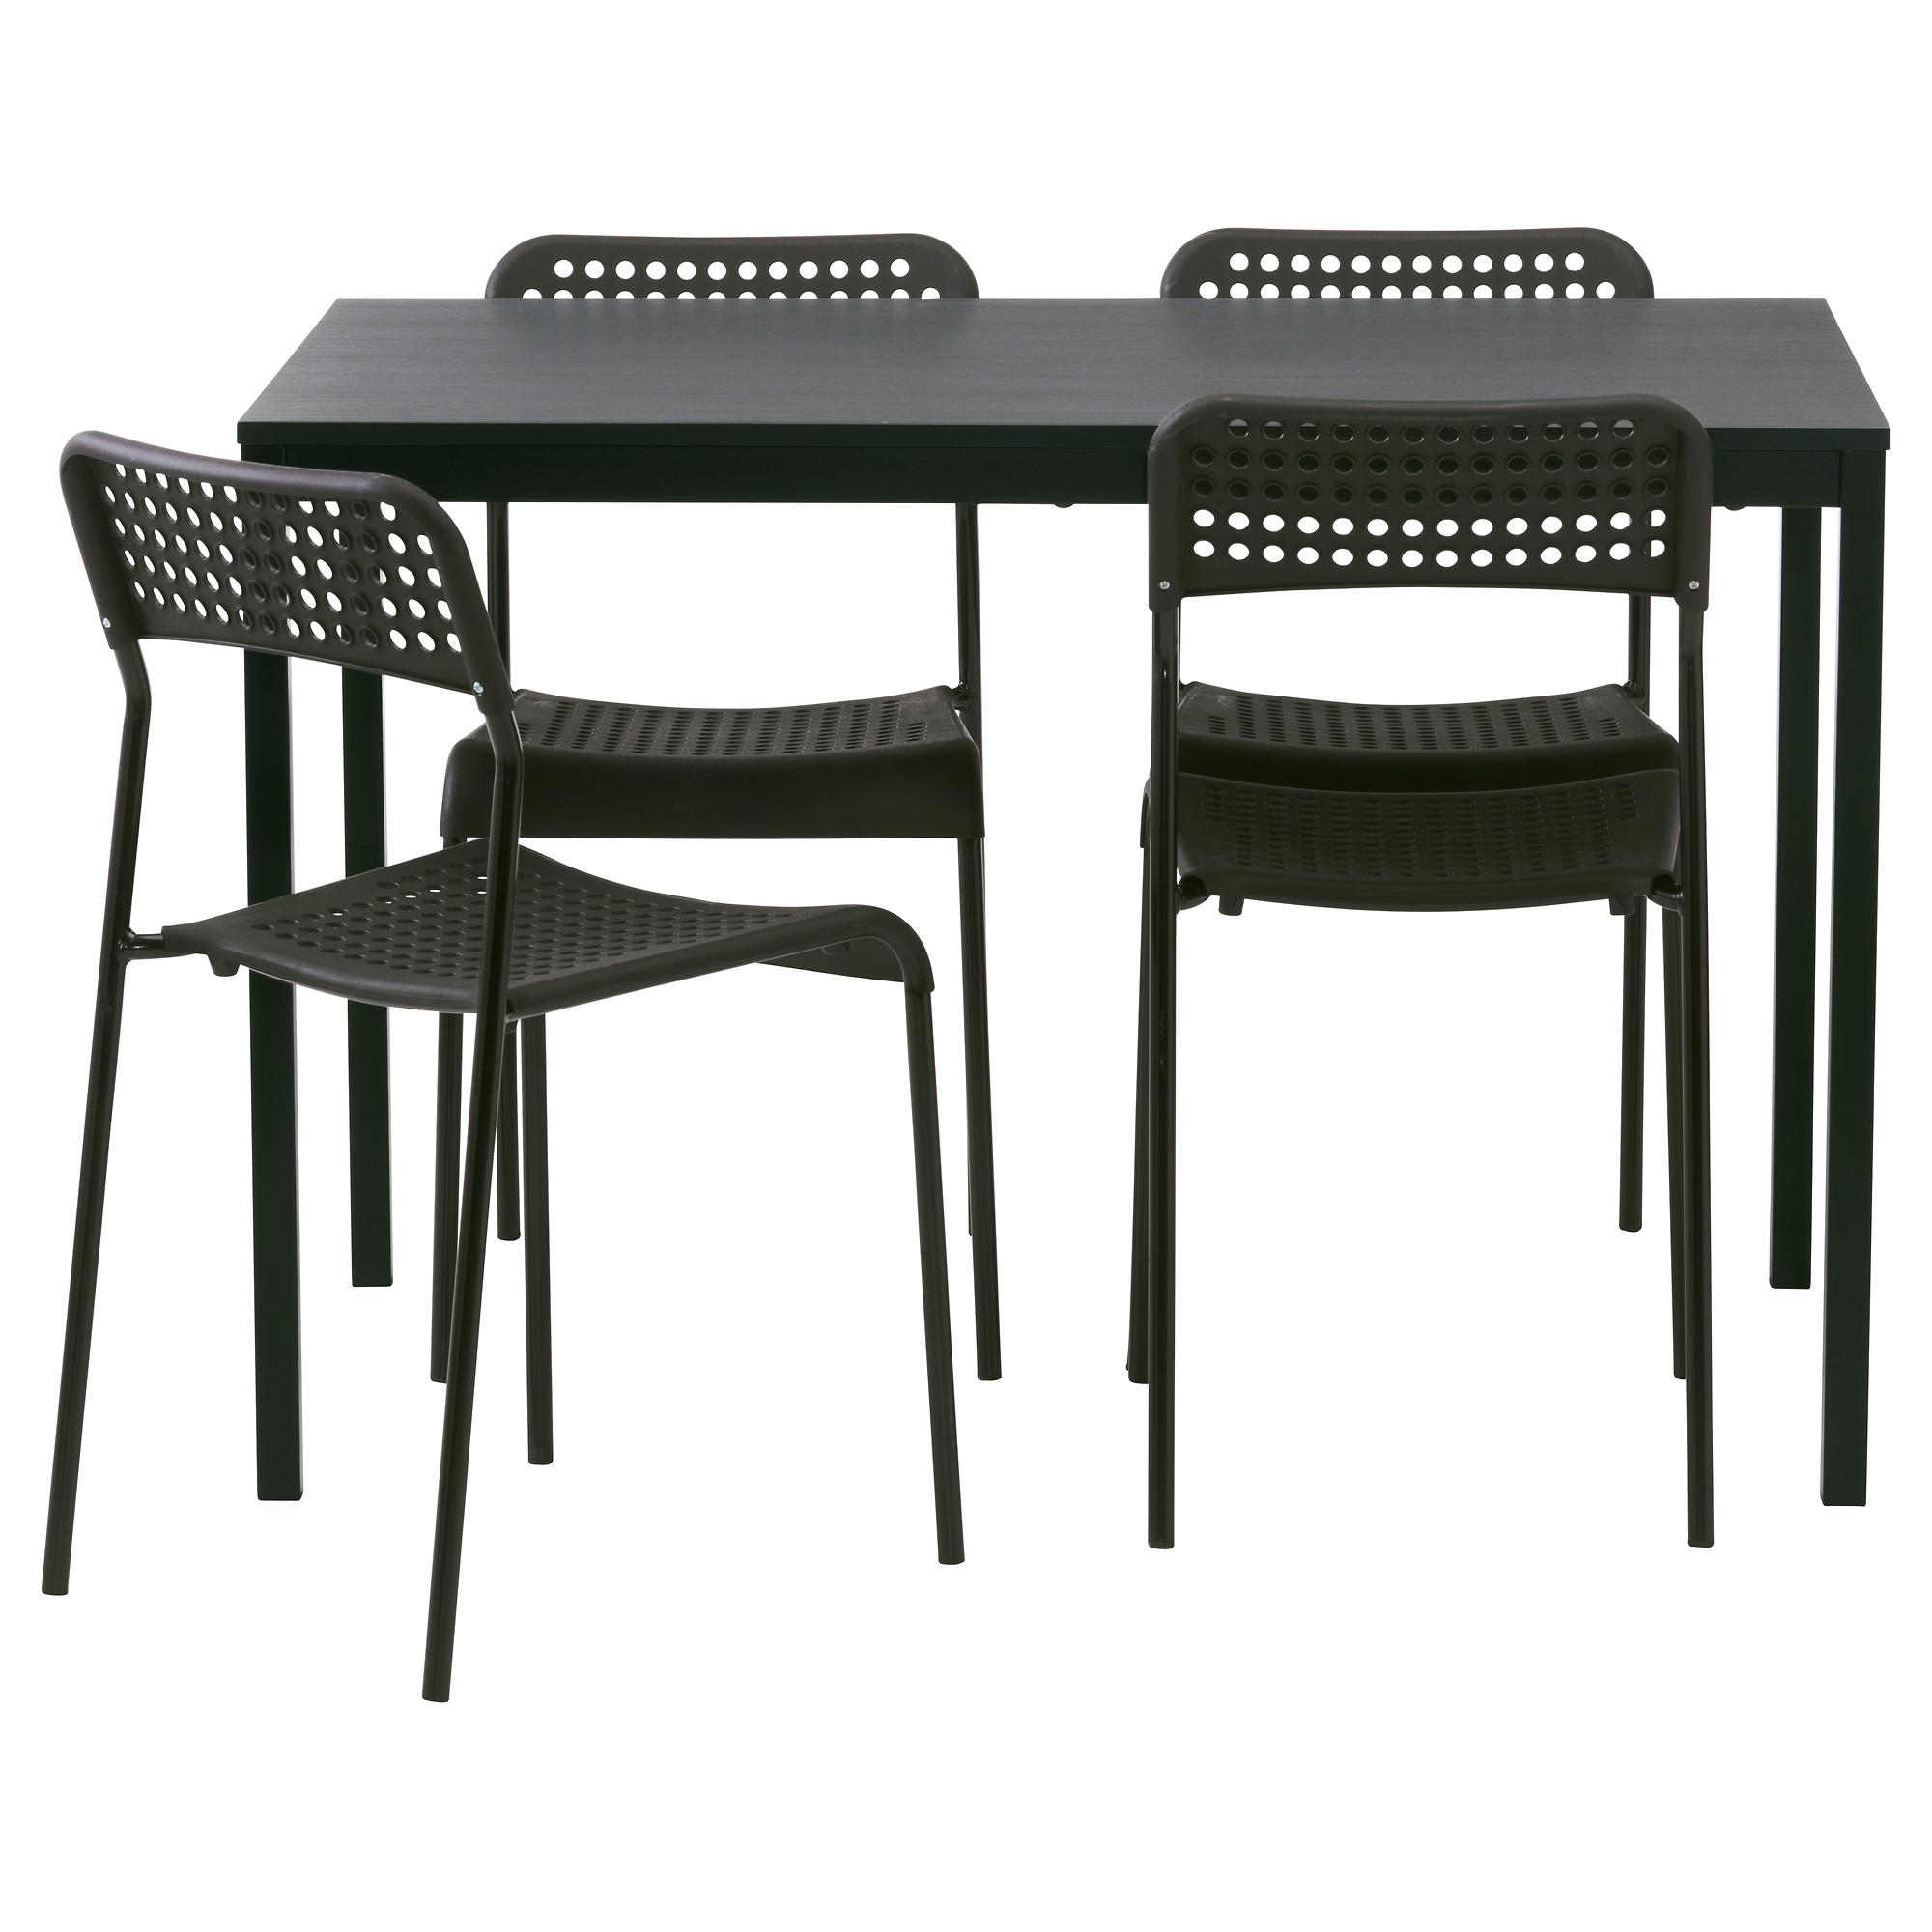 "T""REND– ADDE Table and 4 chairs IKEA"